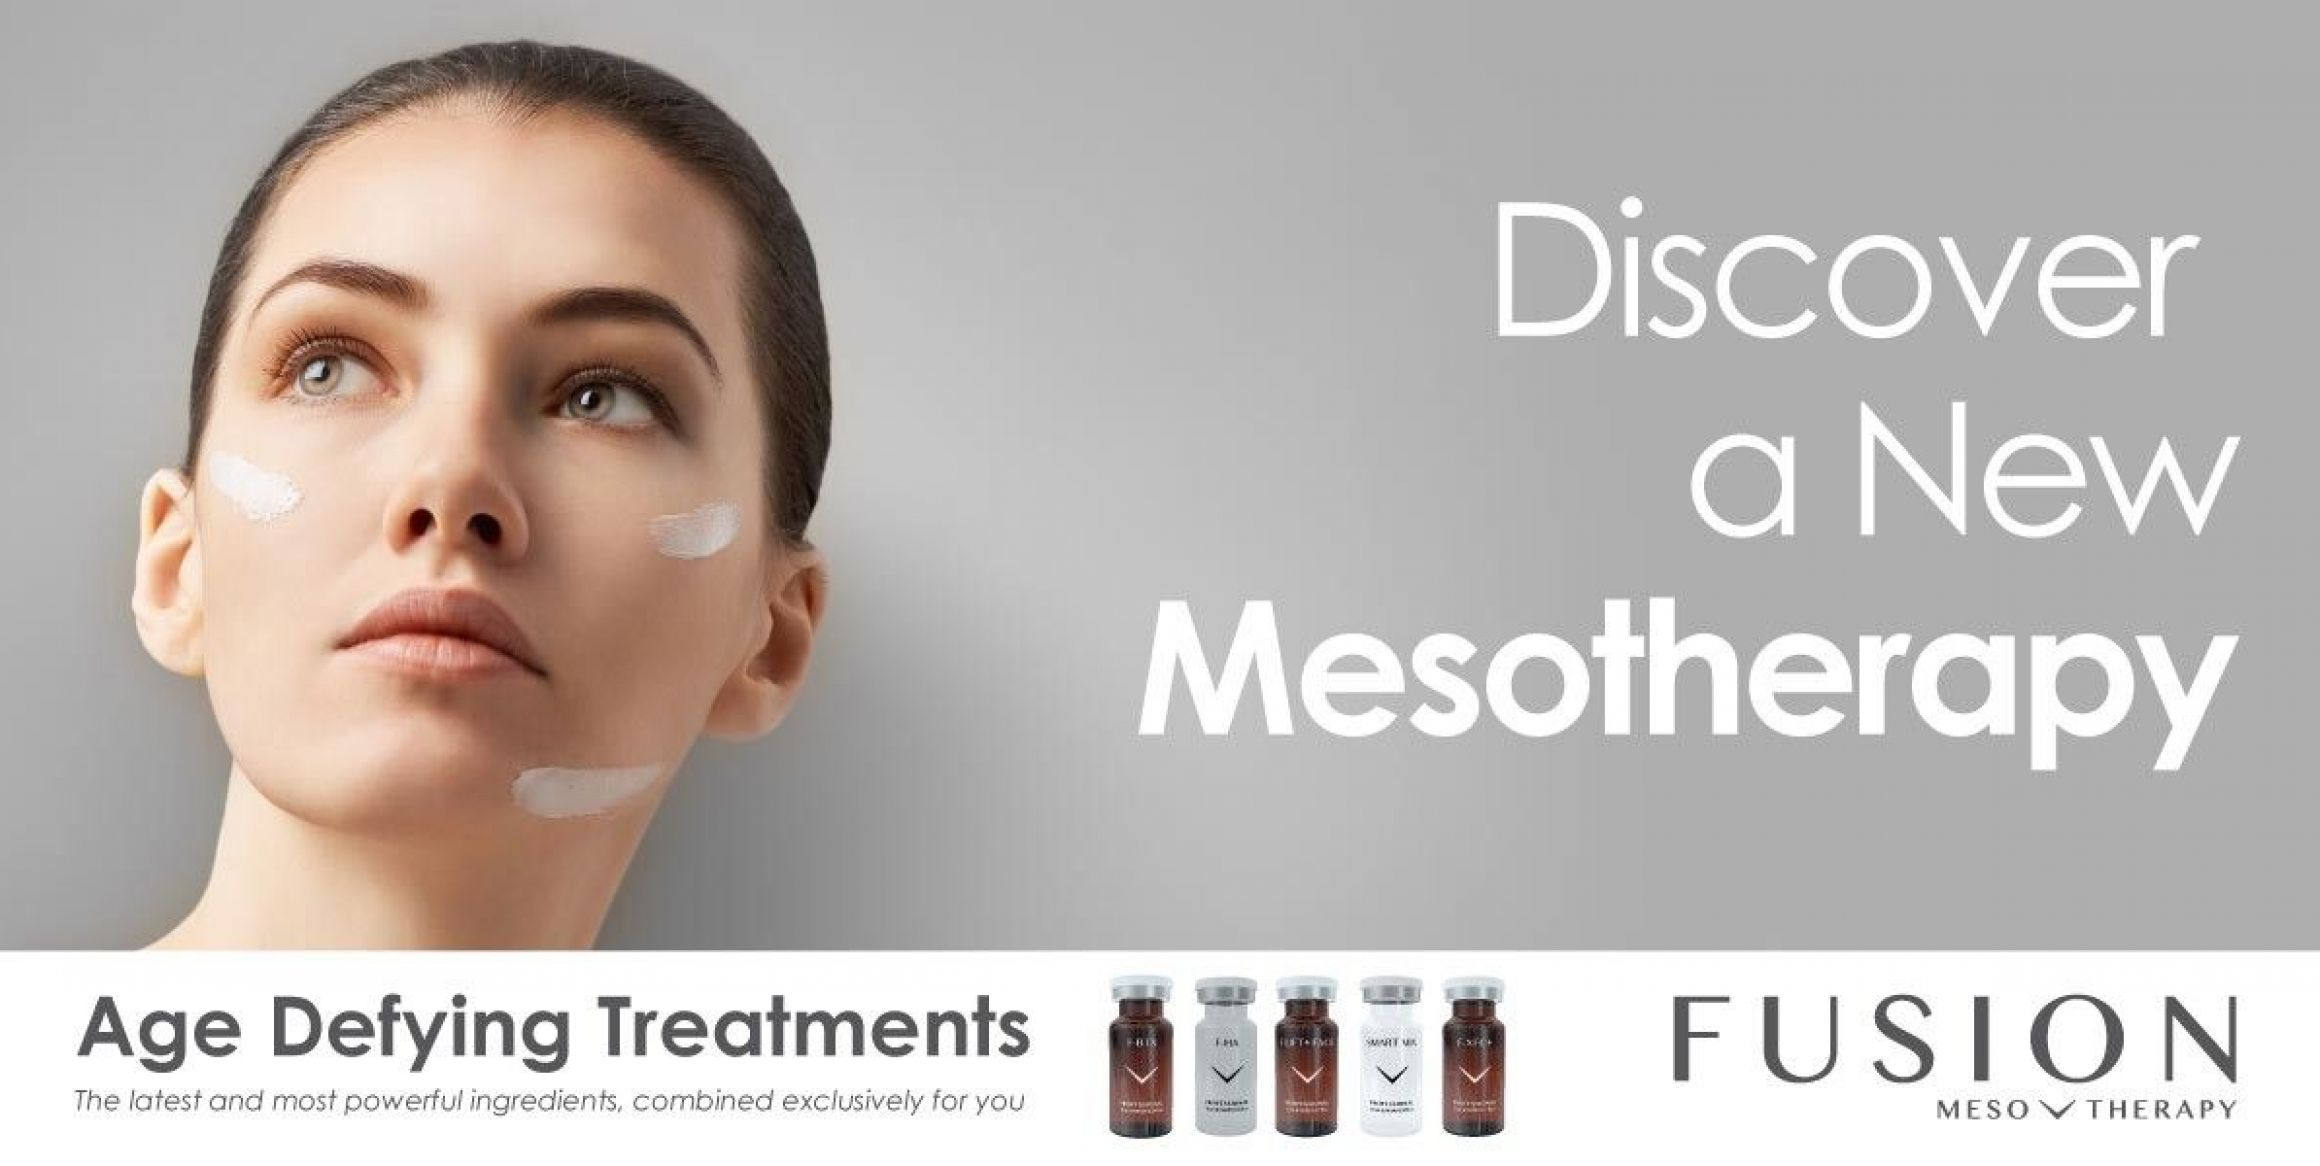 Fusion Mesotherapy combined with collagen stimulation